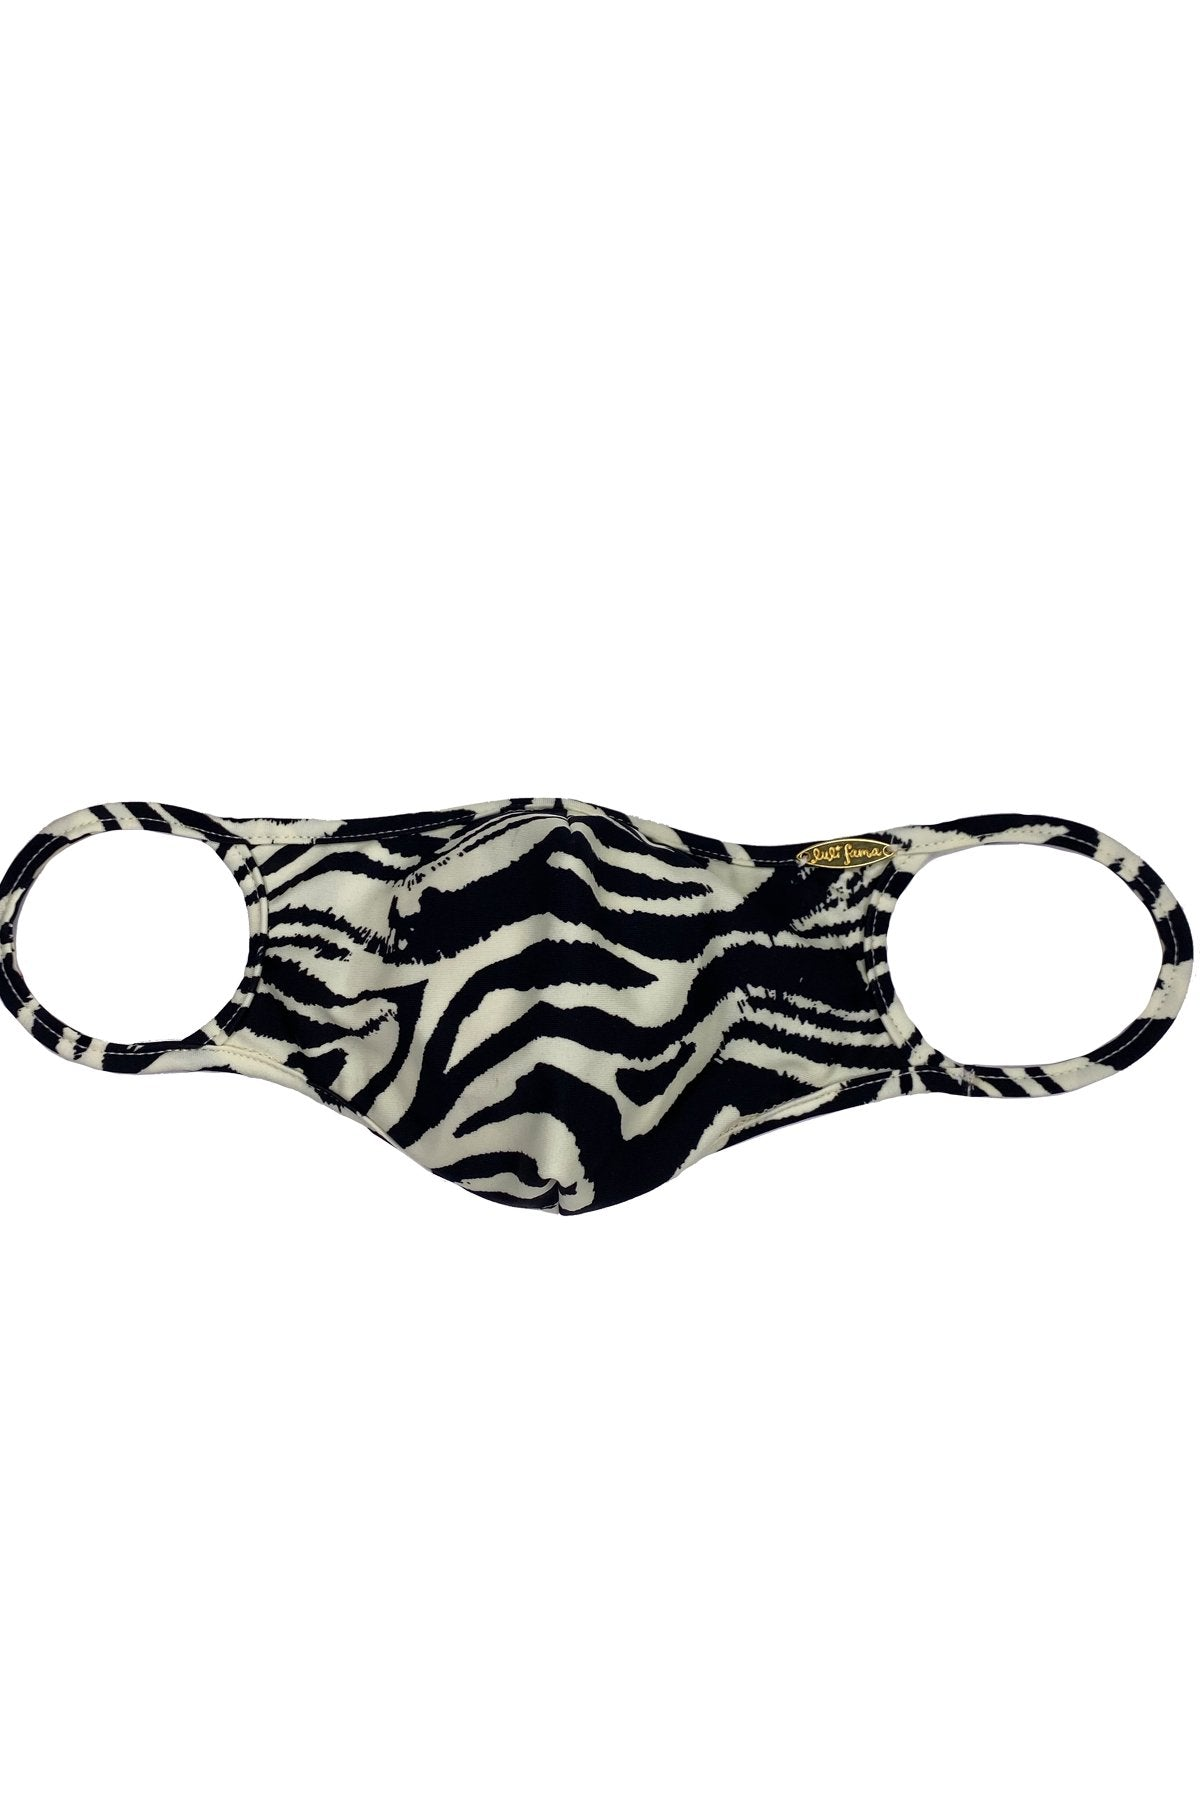 JUNGLE QUEEN - Mask • Perla